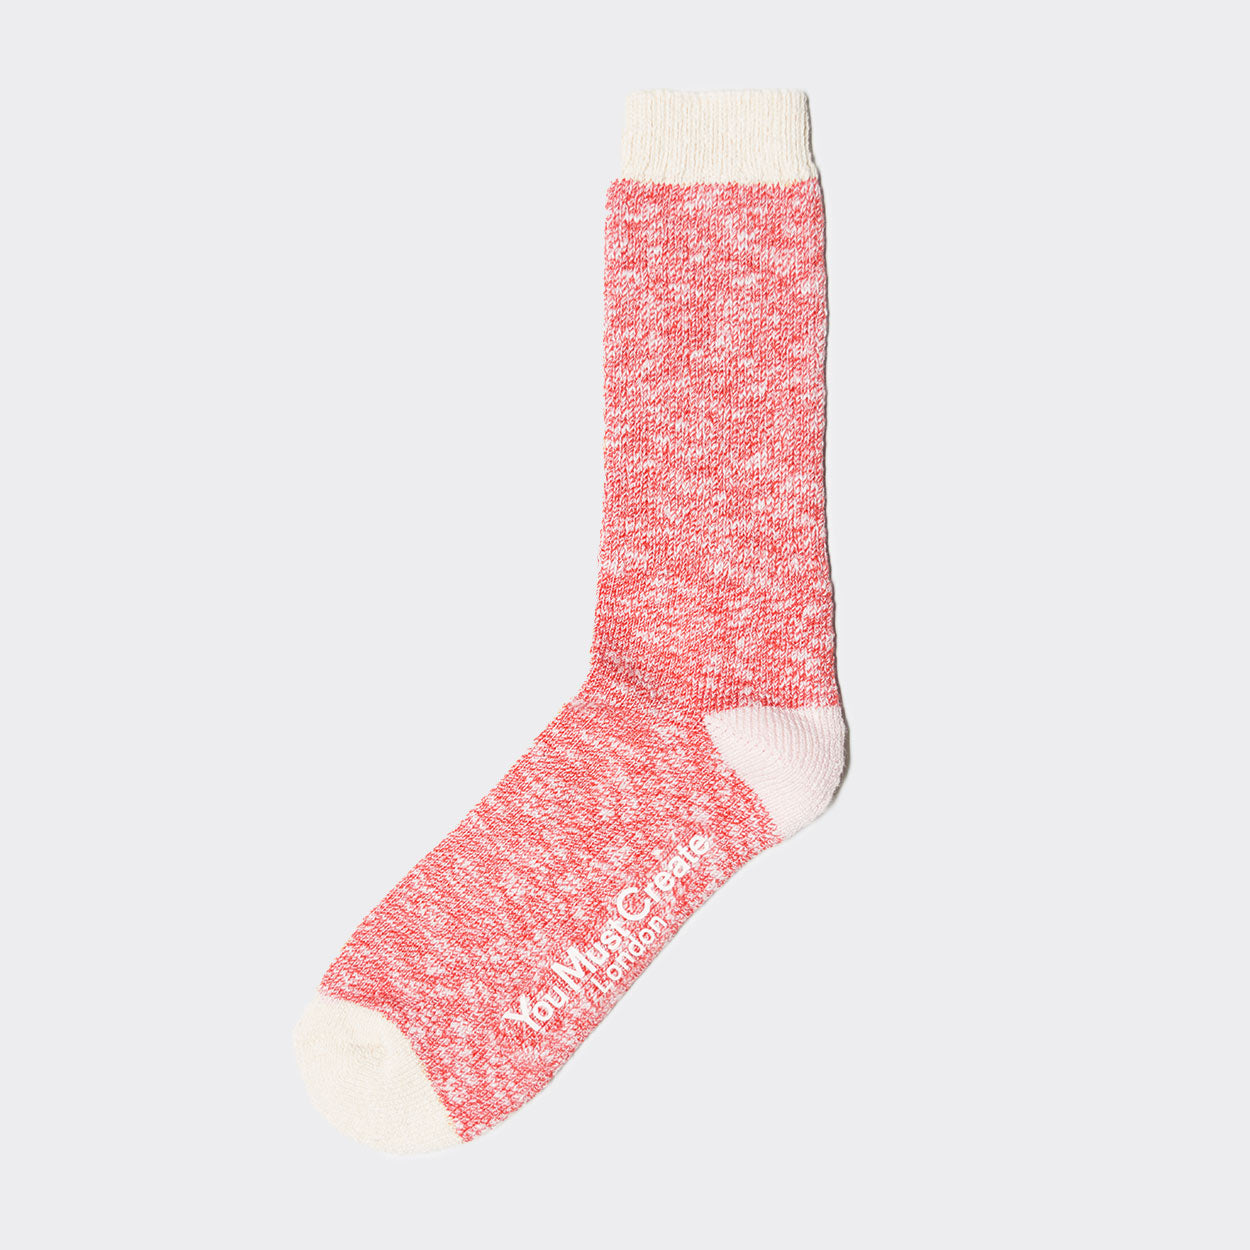 YMC Slub Boot Socks - Red/Ecru